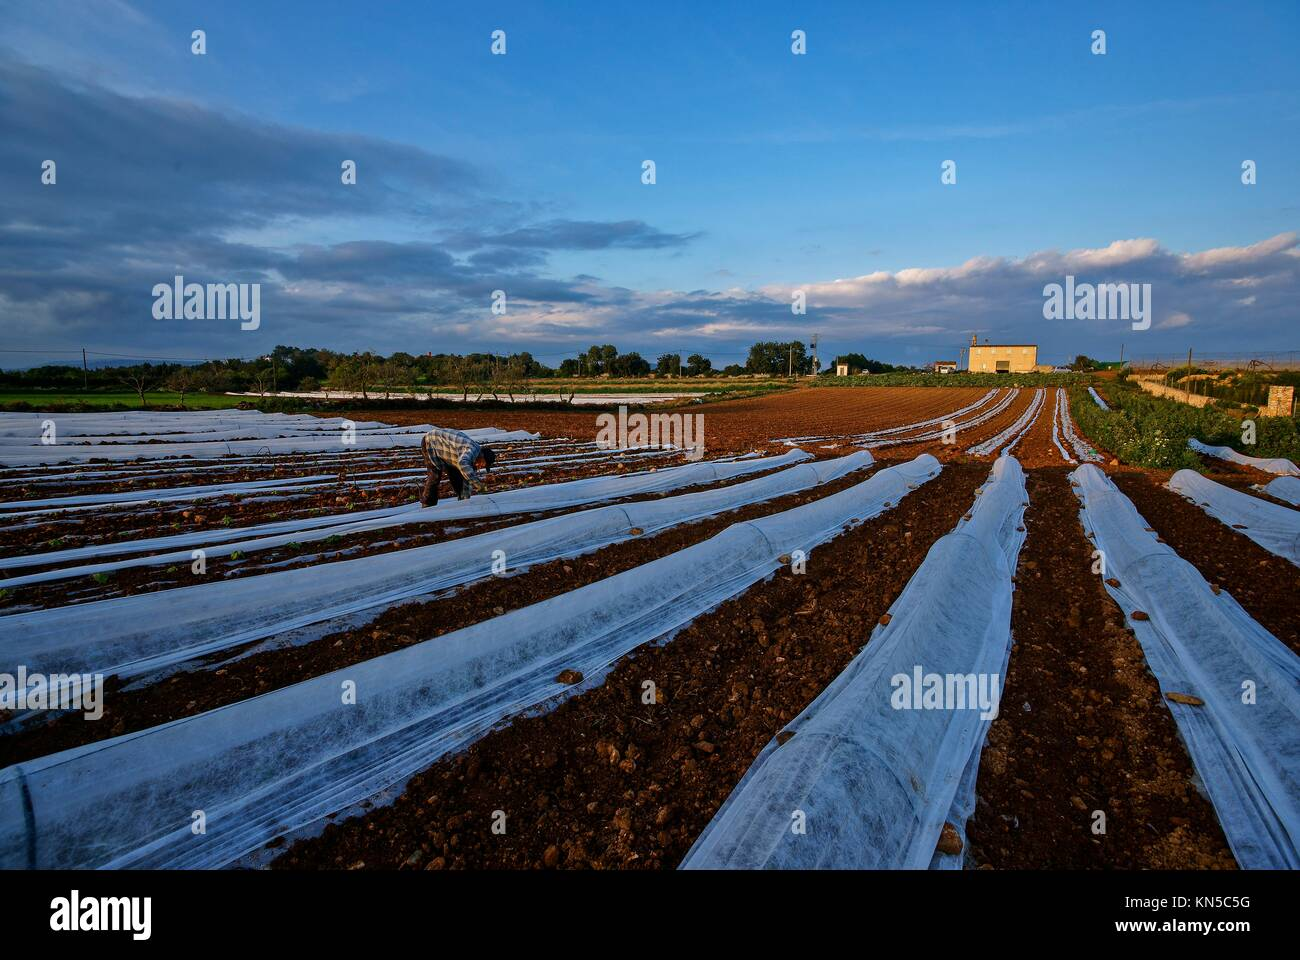 Pla de Manacor. Mallorca. Balearic Islands. Spain. Stock Photo